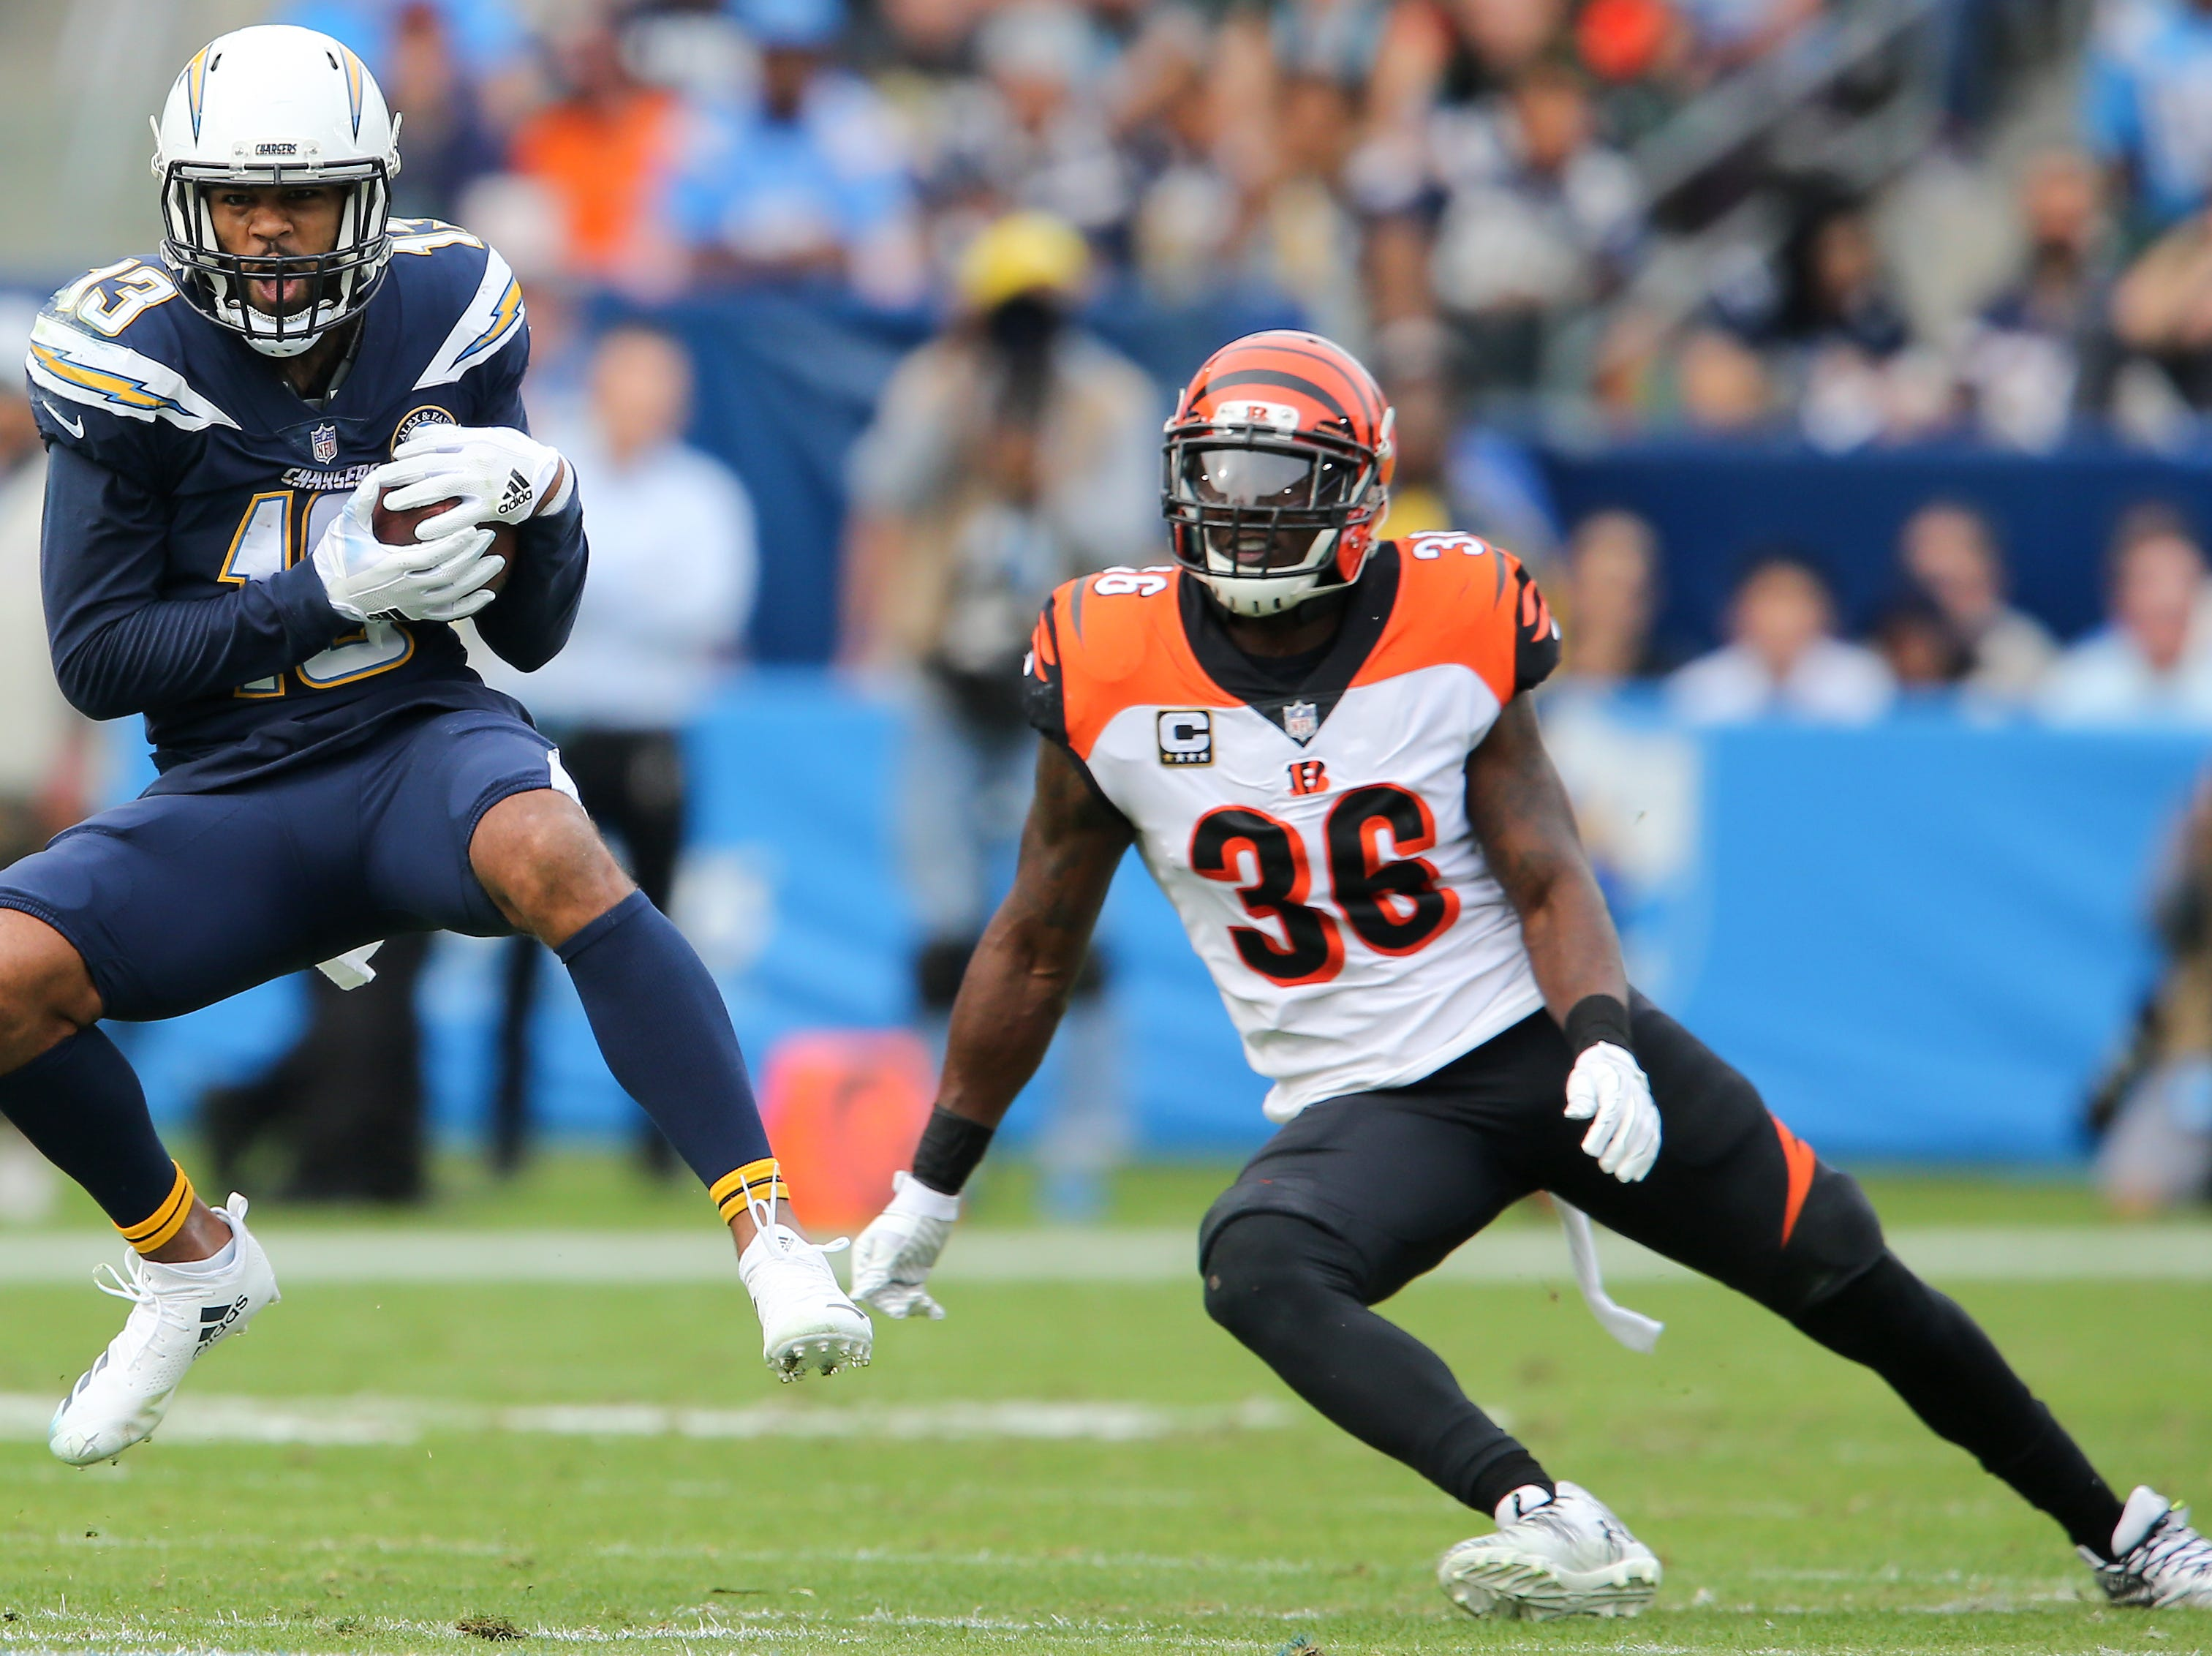 Los Angeles Chargers wide receiver Keenan Allen (13) completes a catch as Cincinnati Bengals strong safety Shawn Williams (36) defends in the first quarter of a Week 14 NFL football game, Sunday, Dec. 9, 2018, at StubHub Center in Carson, California.